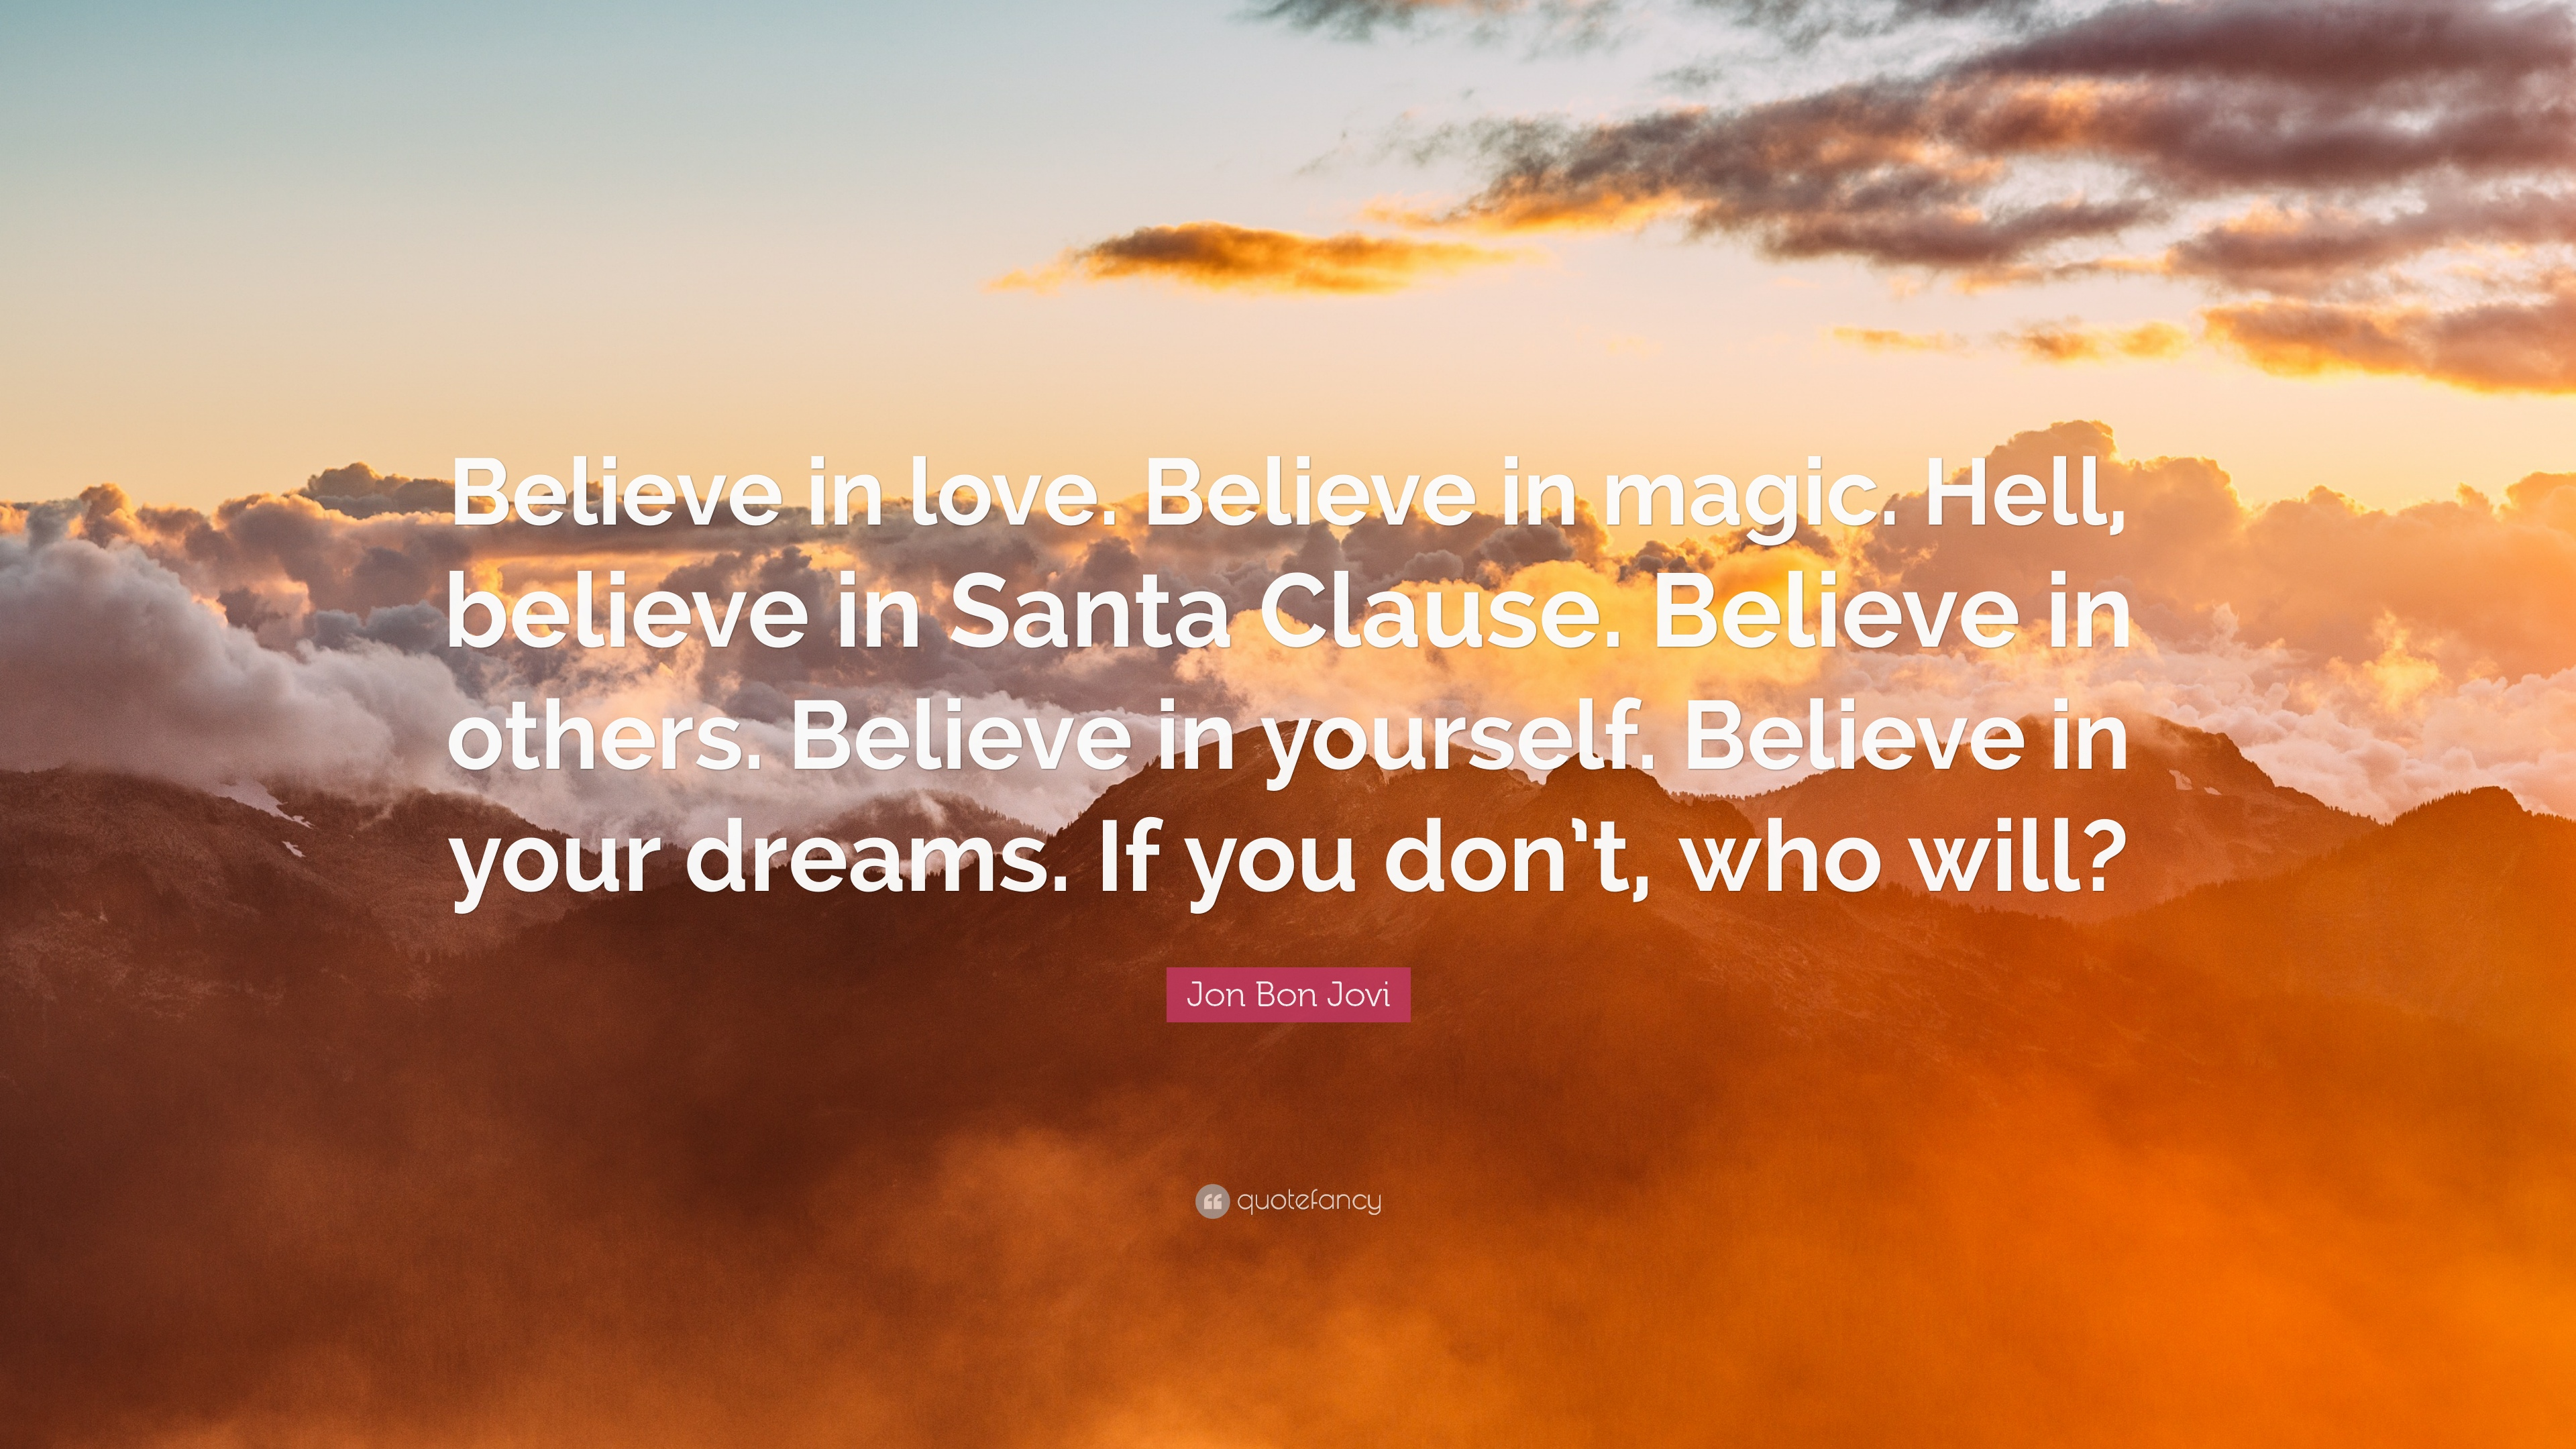 Believe In Love Quotes Believe In Santa Claus Magic Quote  The Best Collection Of Quotes